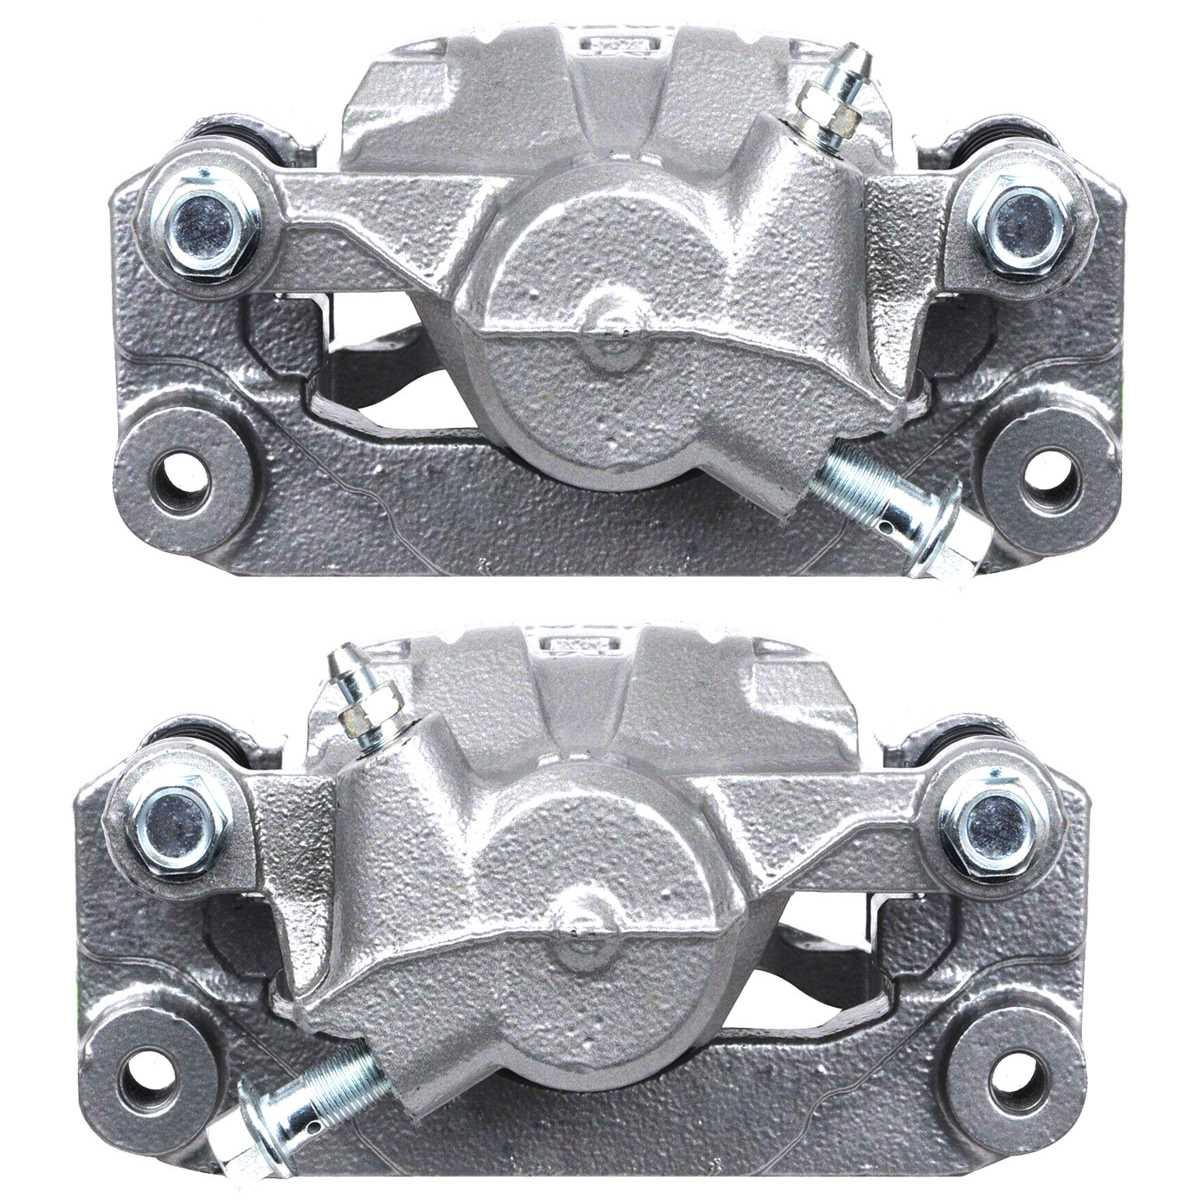 AutoShack BC30230PR Front Brake Caliper Pair 2 Pieces Fits Driver and Passenger Side